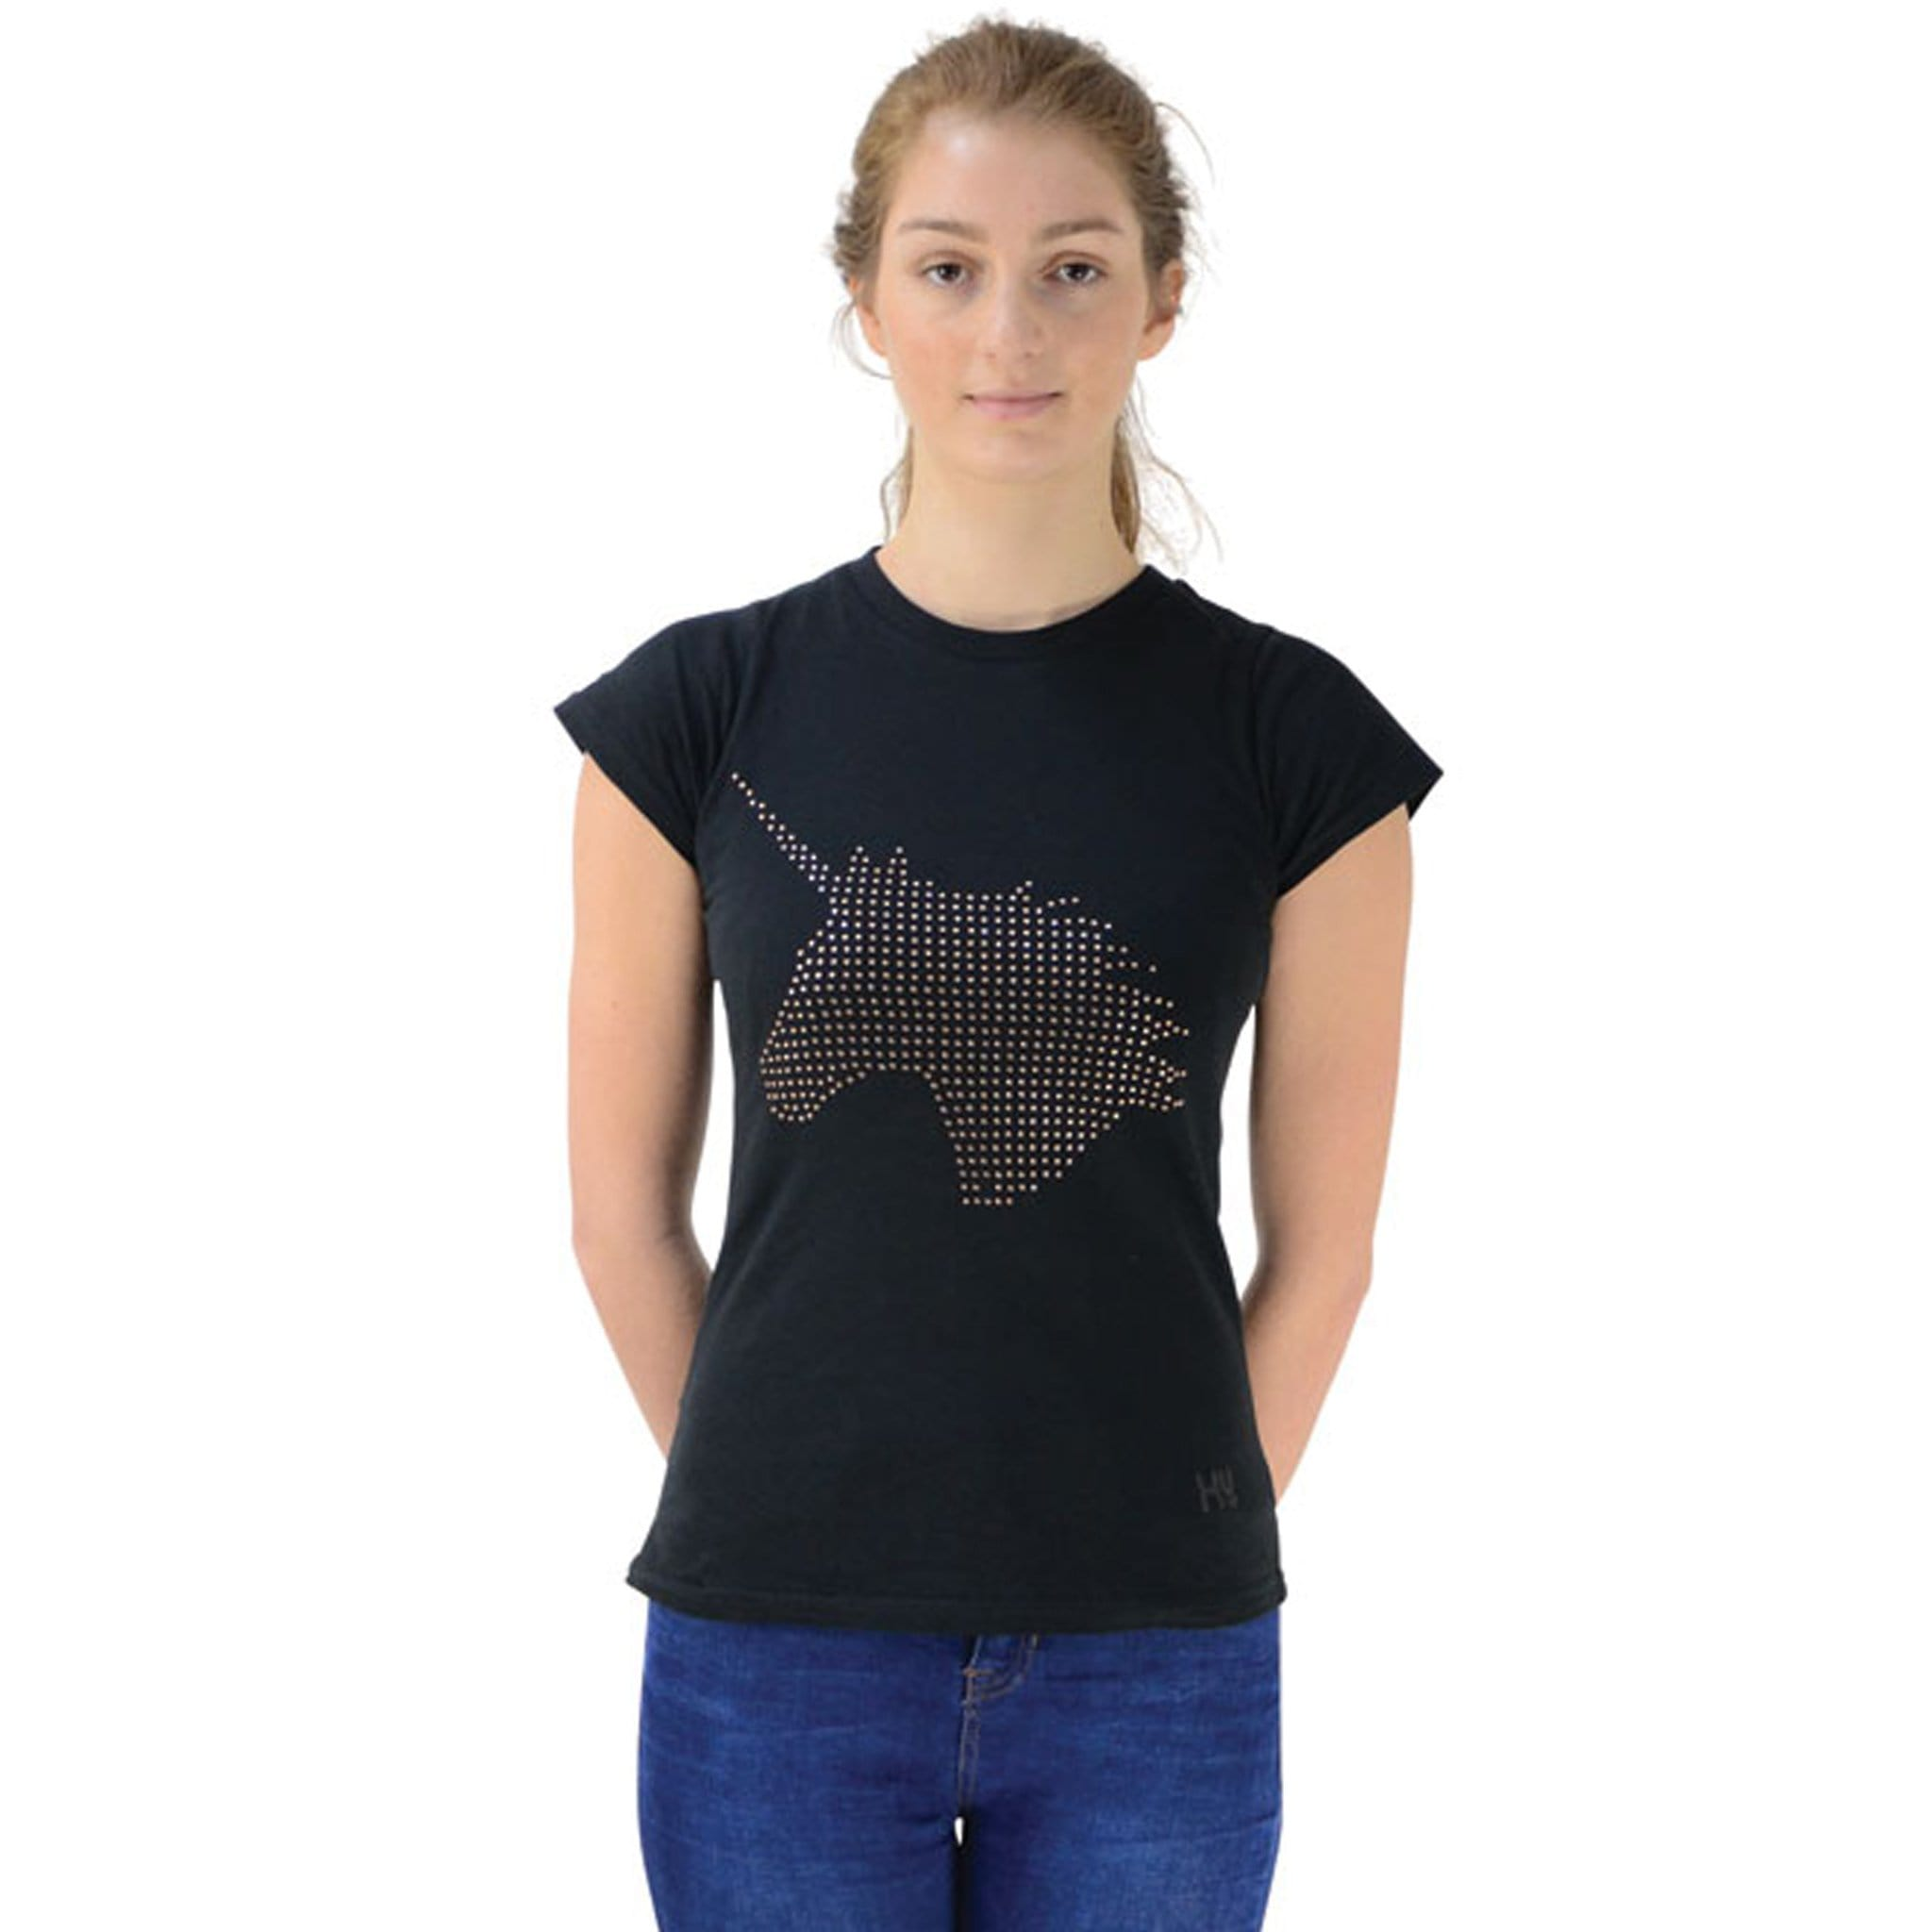 HyFASHION Unicorn Dreamer T-Shirt Black And Rose Gold Front 22173.